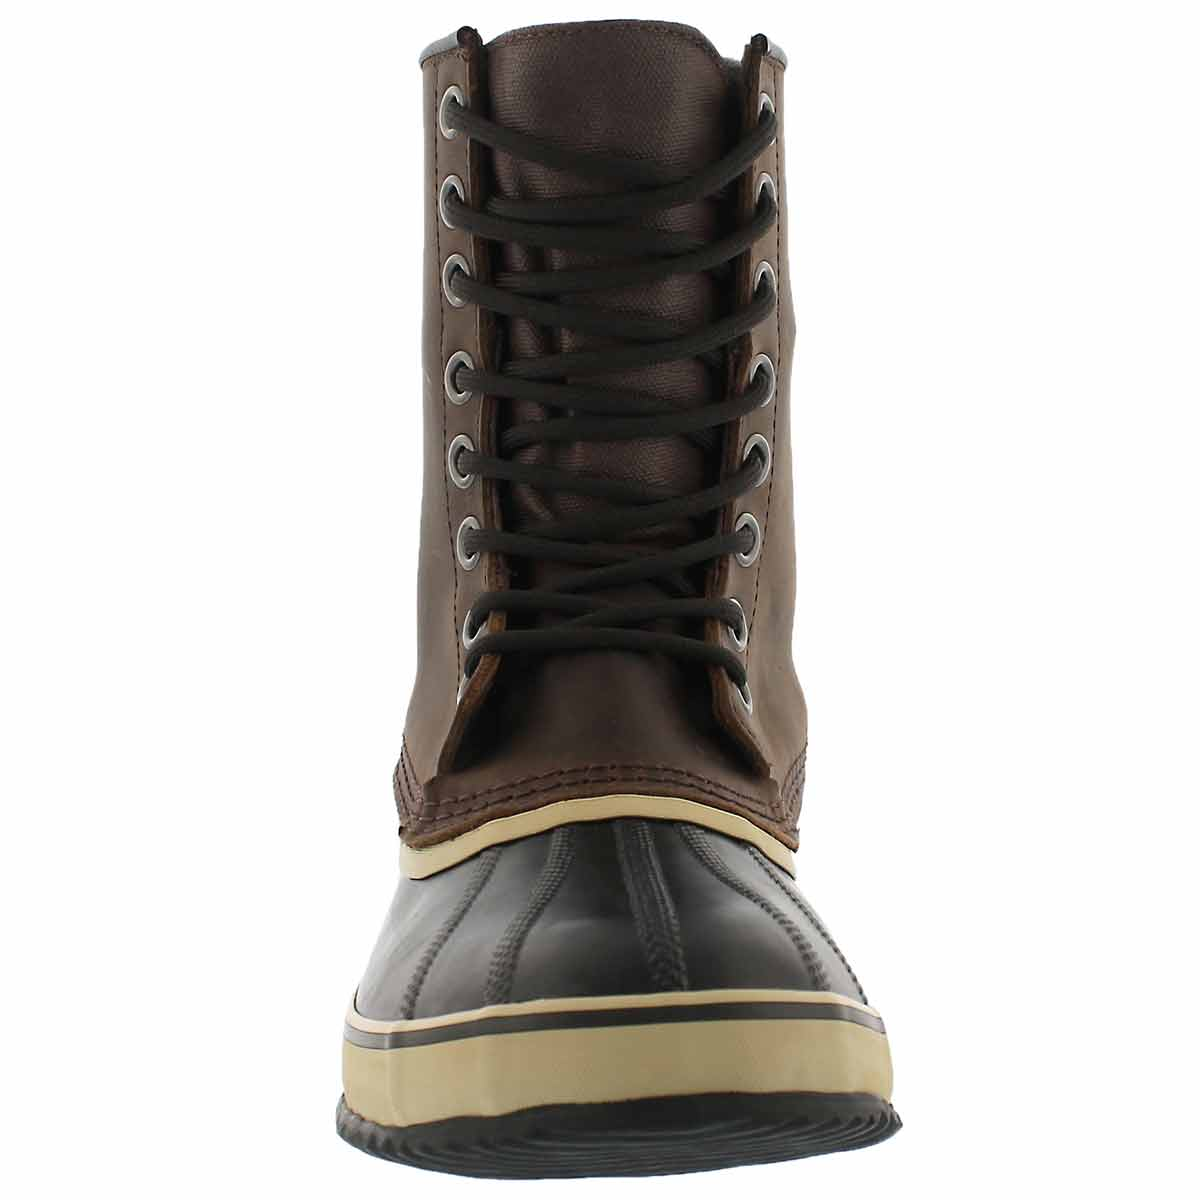 Mns 1964 Premium tobac wtpf winter boot